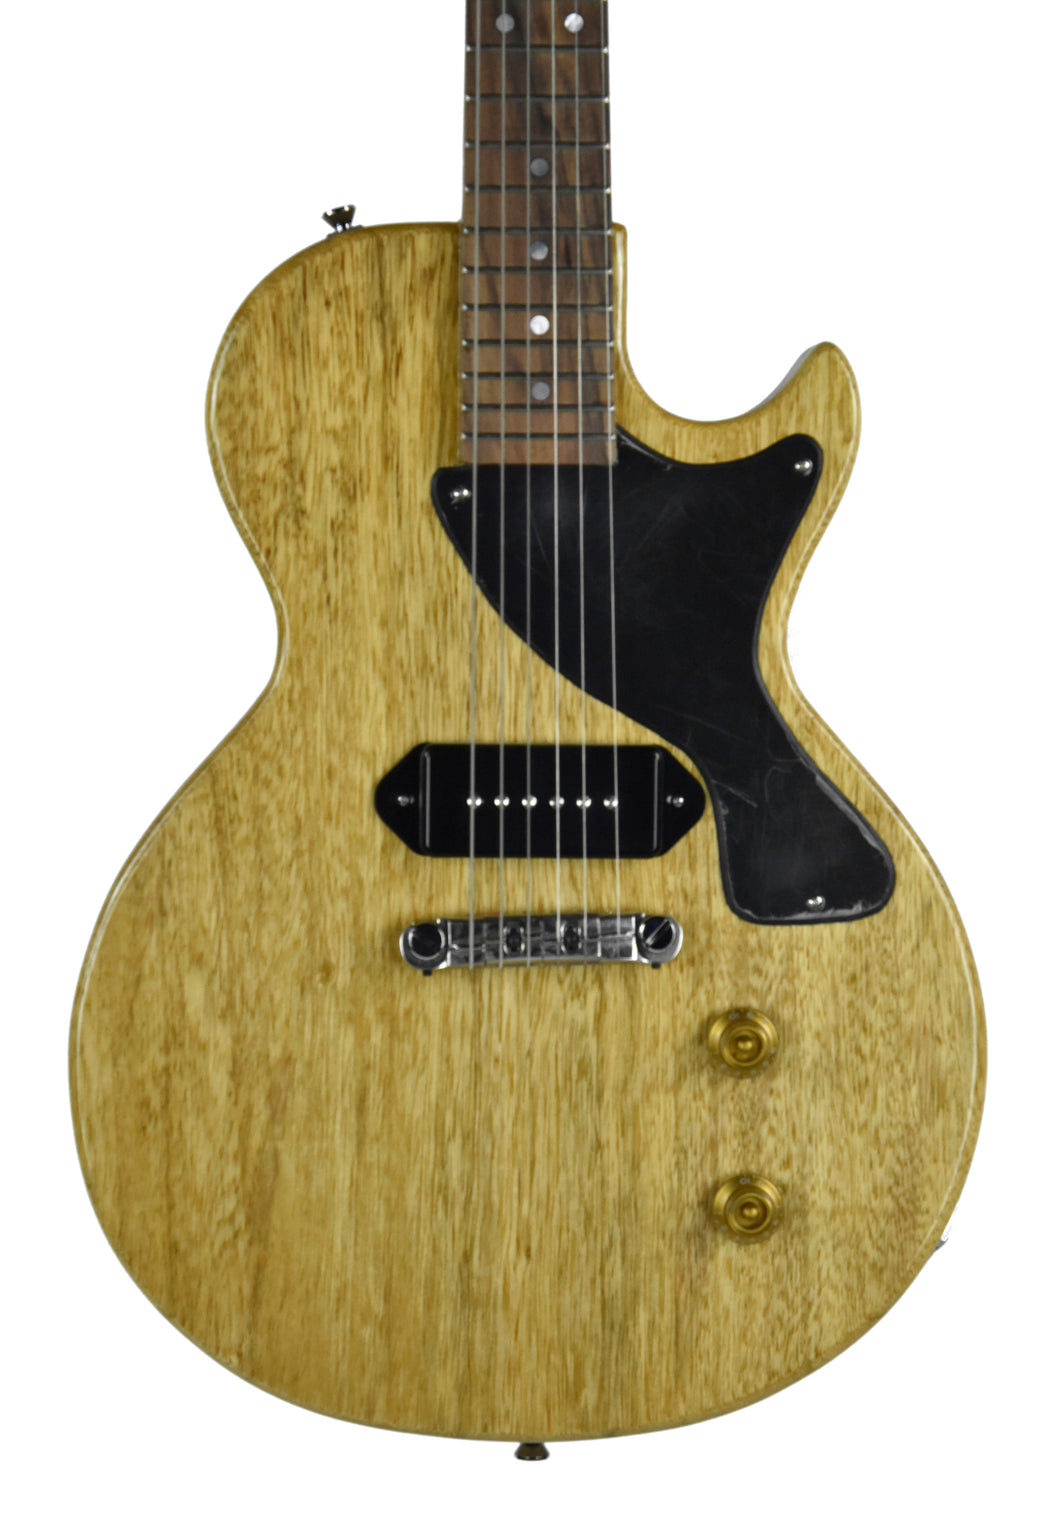 Kurt Wilson Les Paul Jr. in Natural Korina - Front